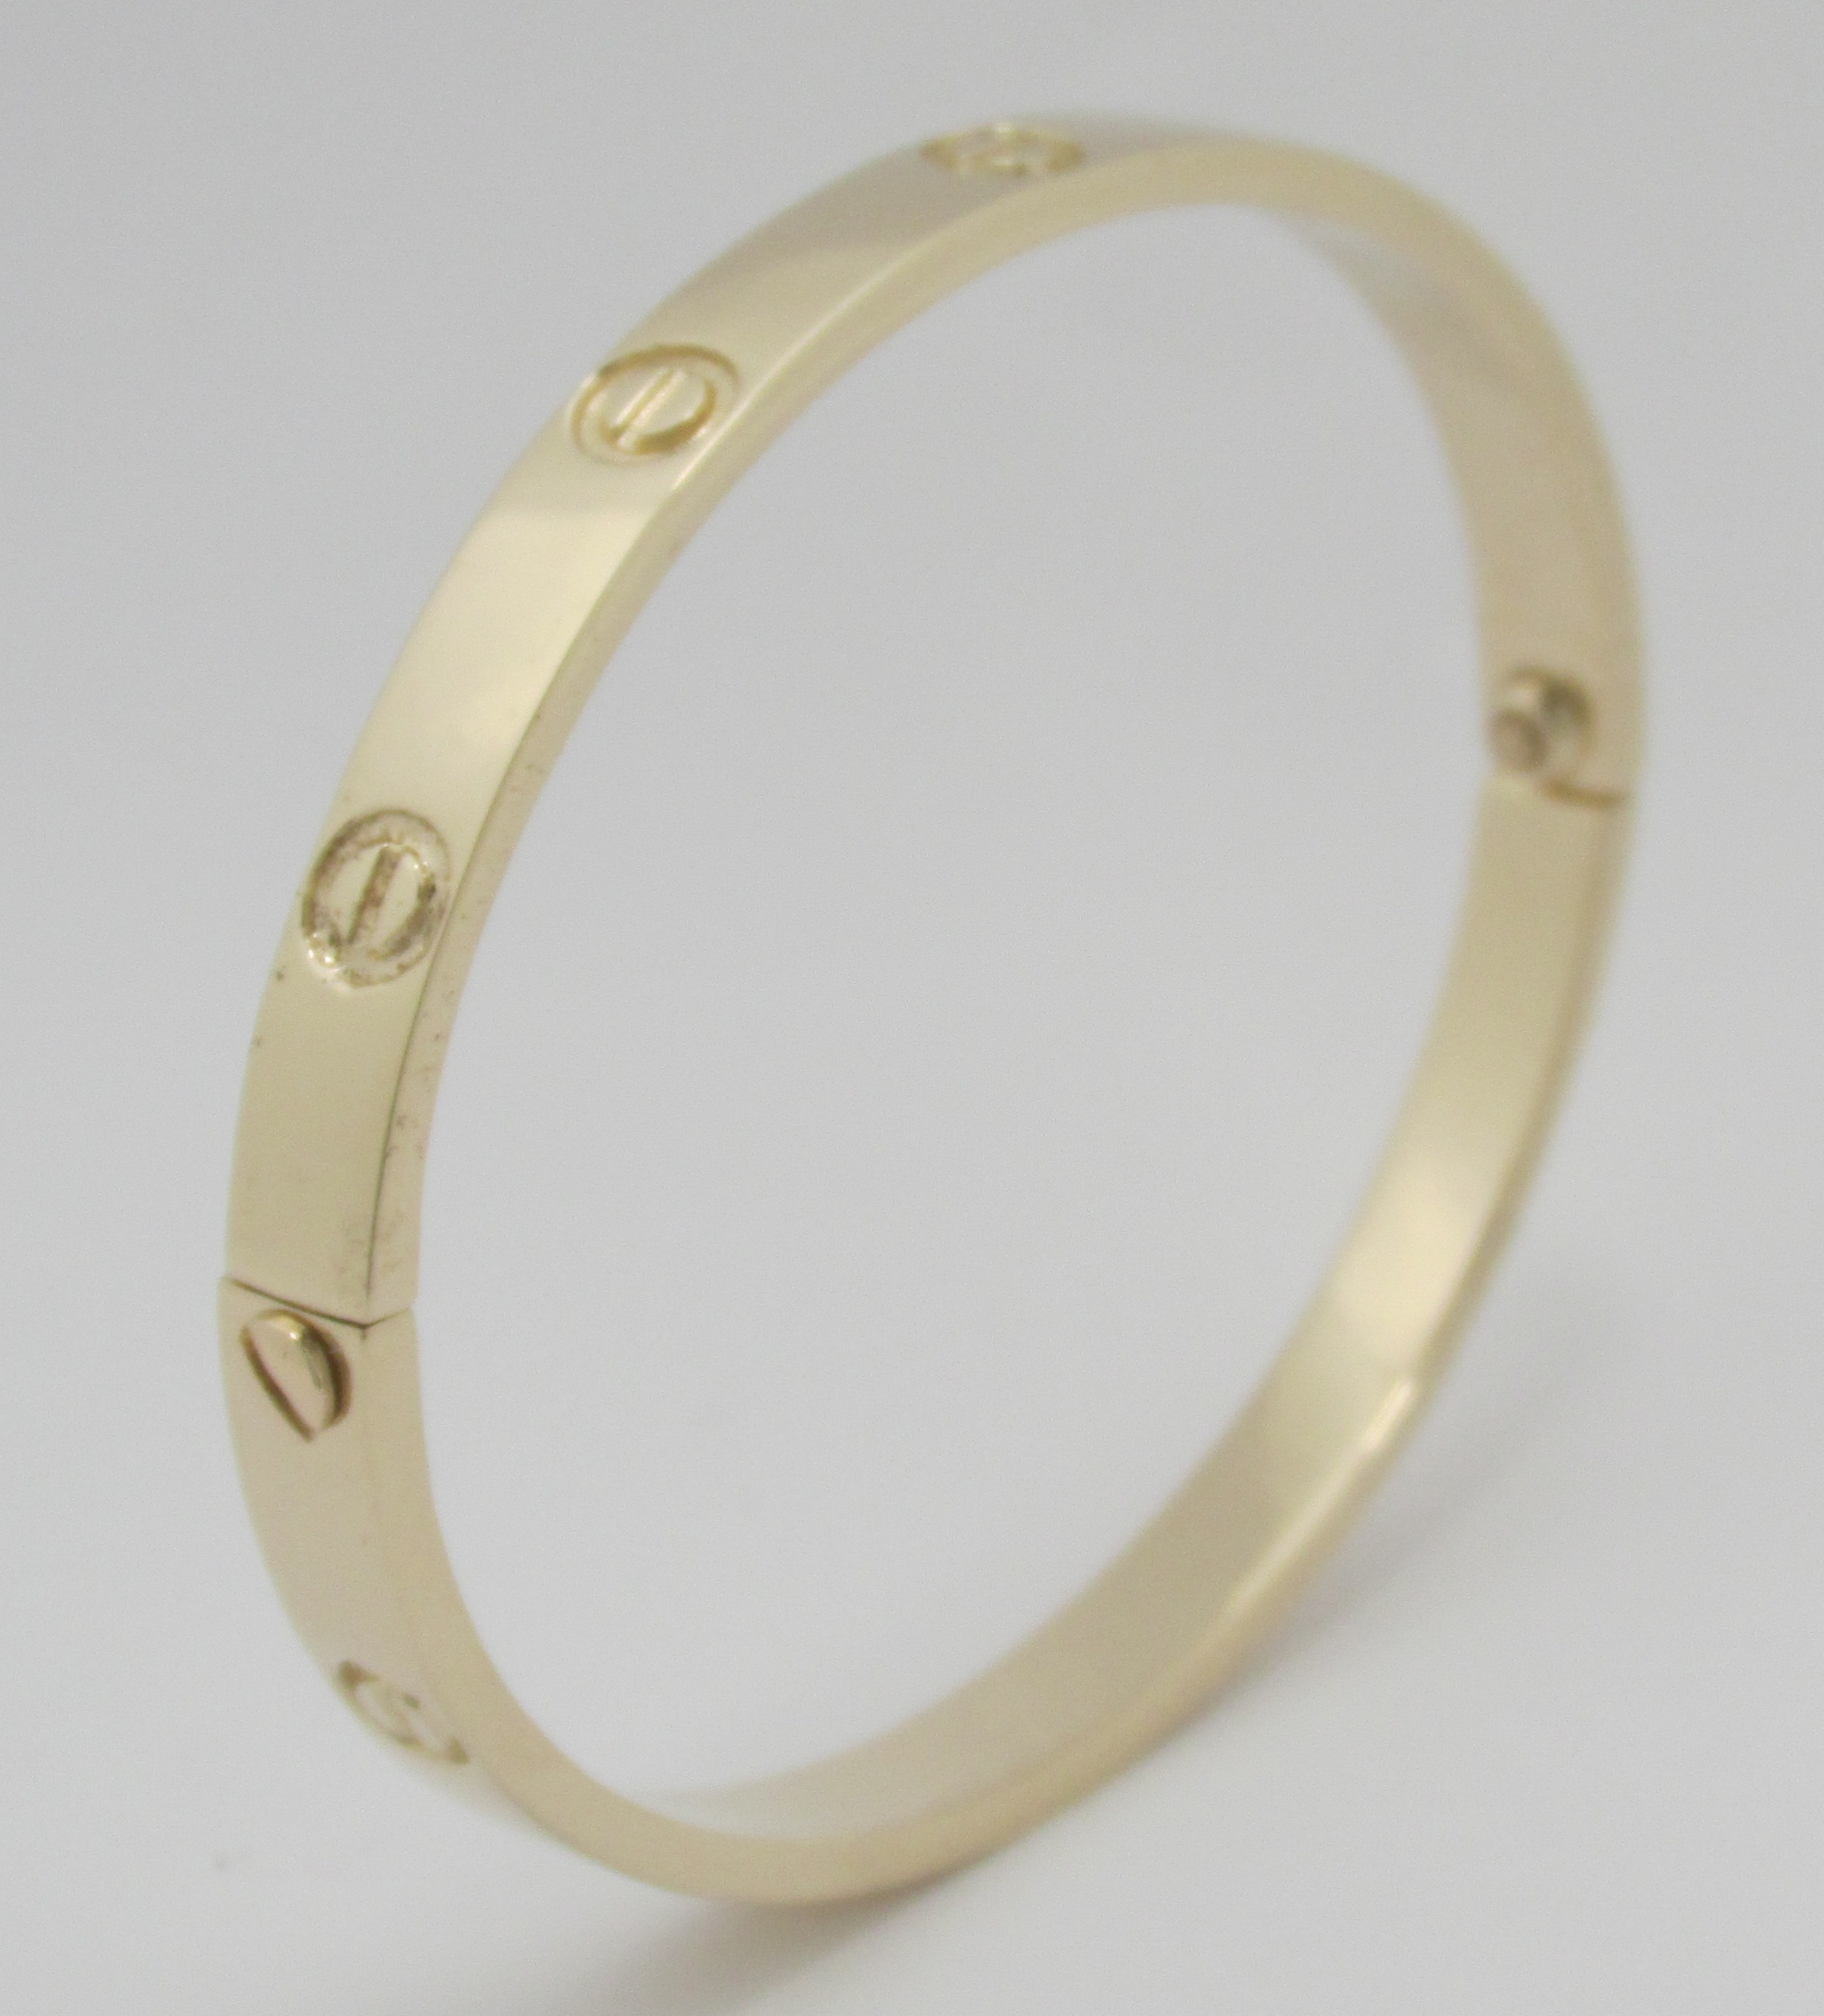 watch gold estate bangle yellow grams bracelet find engraved bangles solid